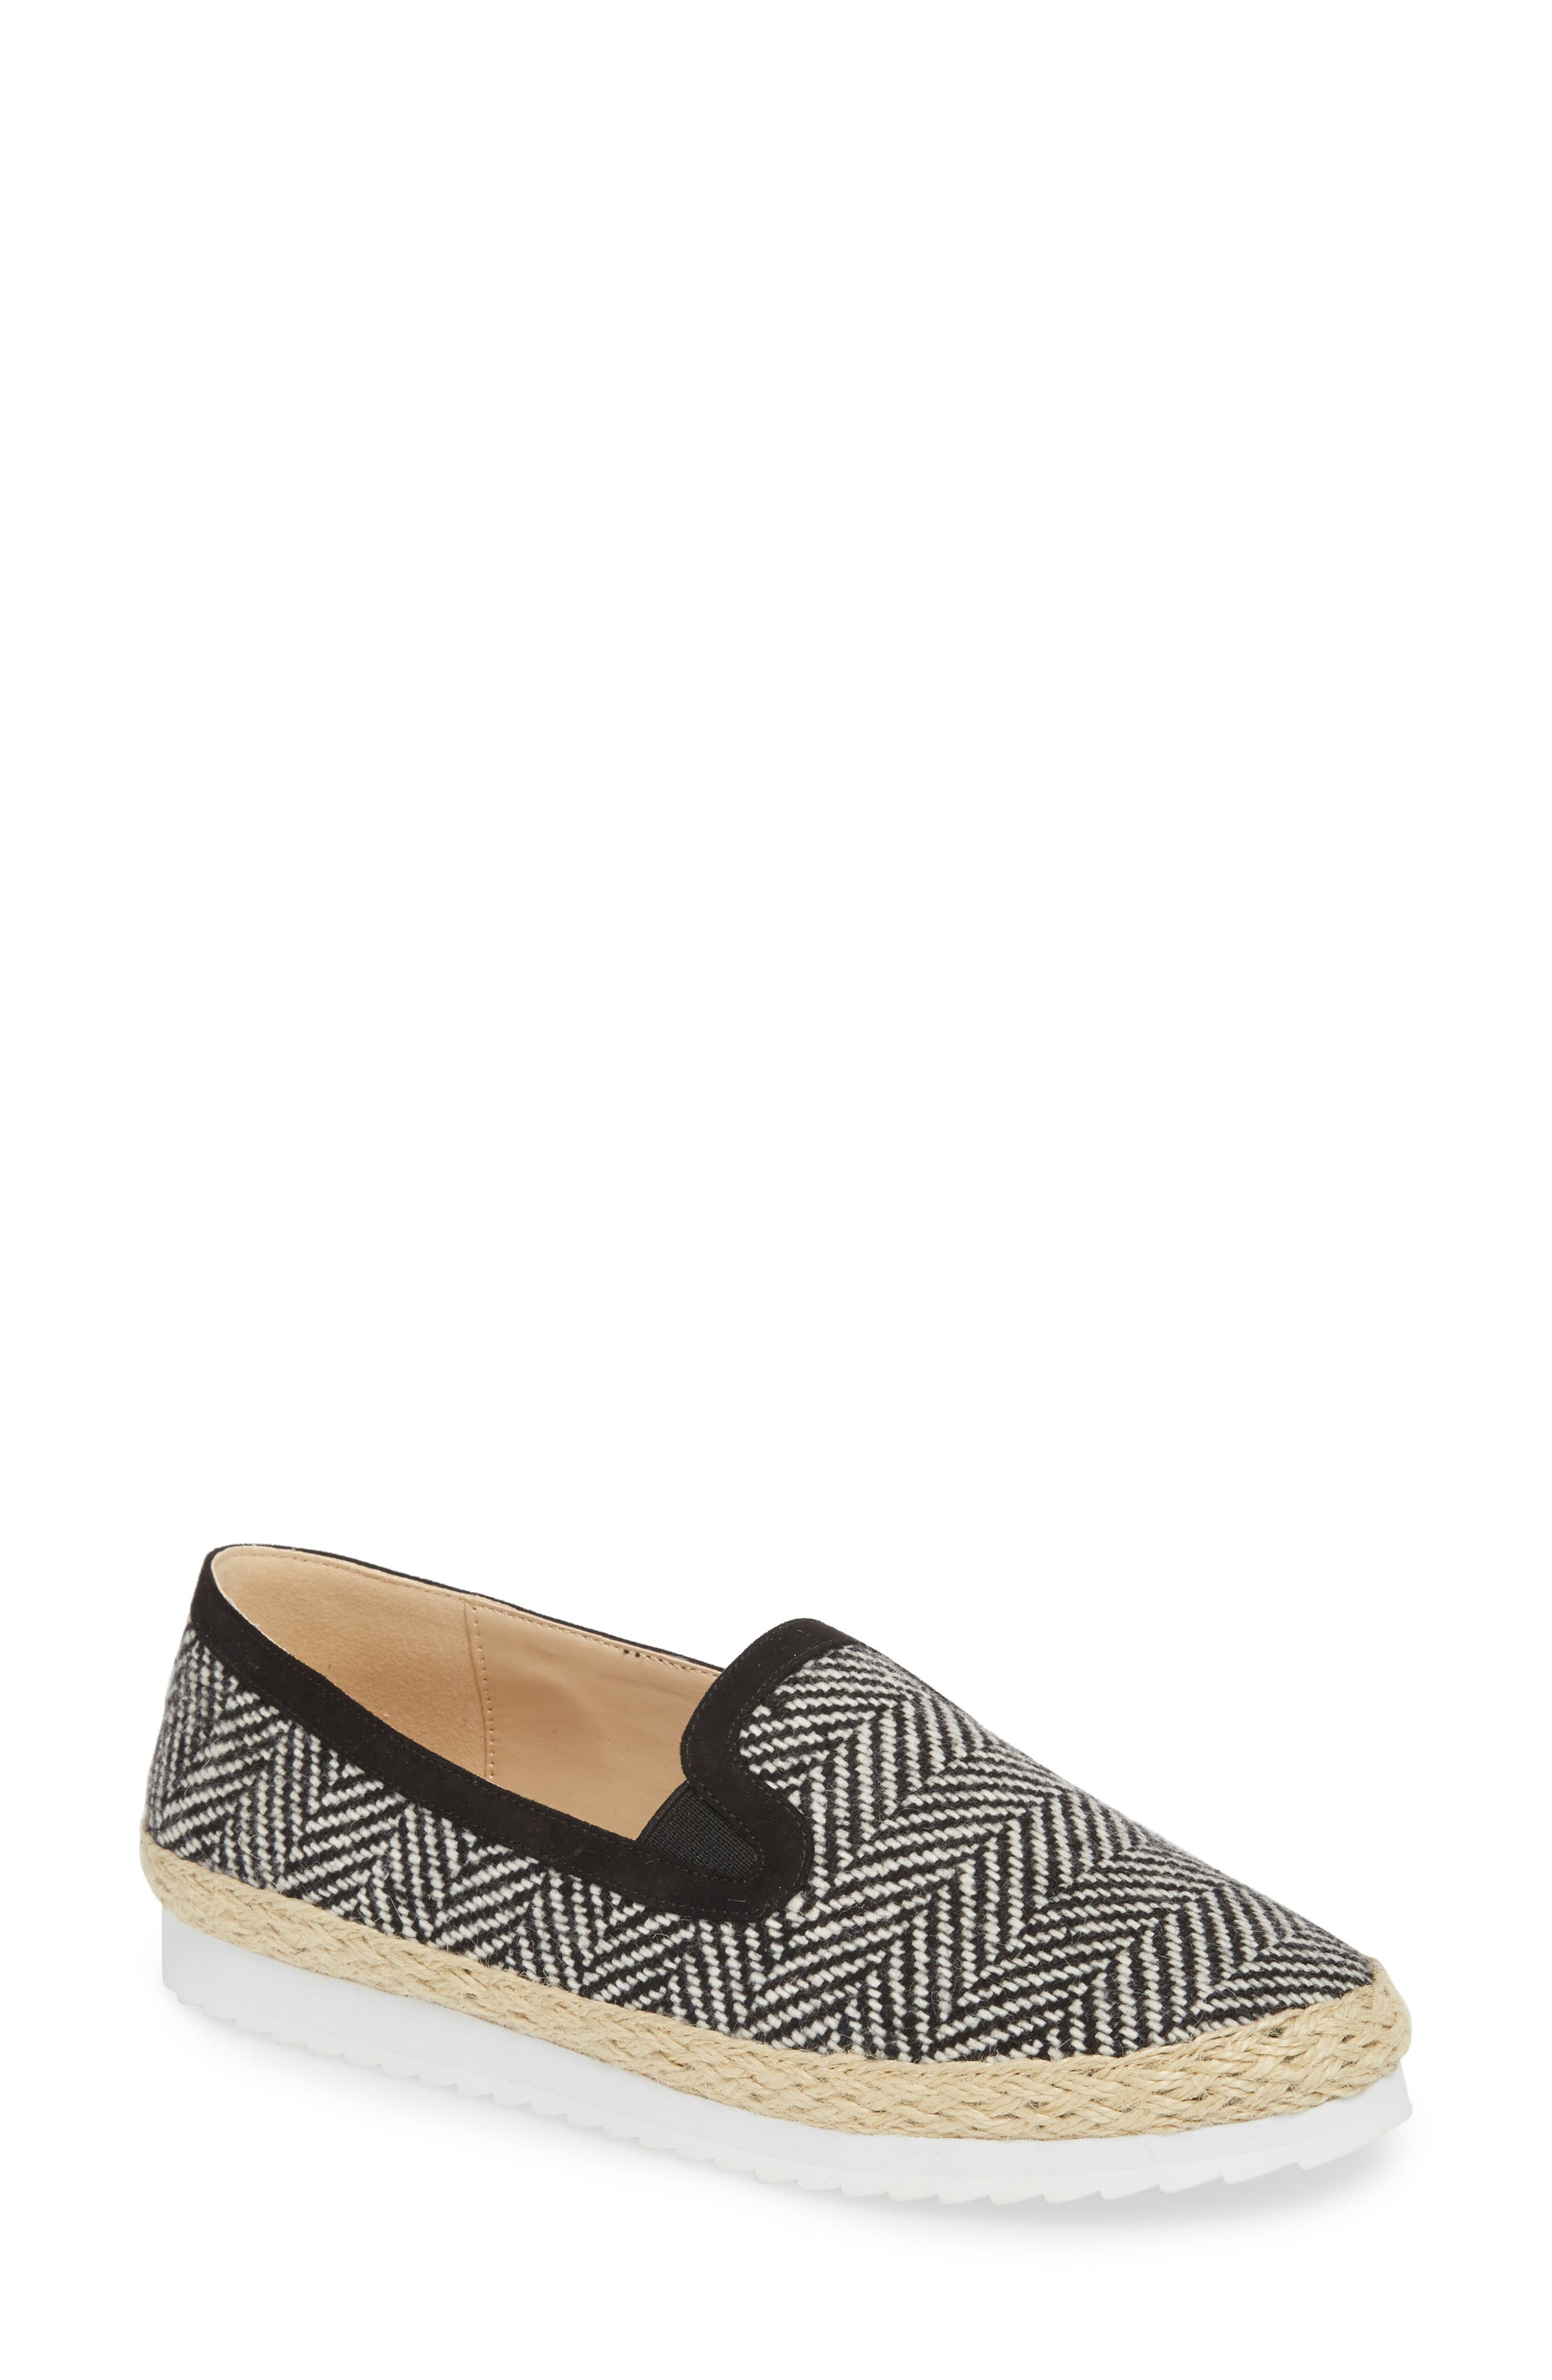 Tight Line Espadrille Flat,                         Main,                         color, BLACK HOUNDSTOOTH FABRIC